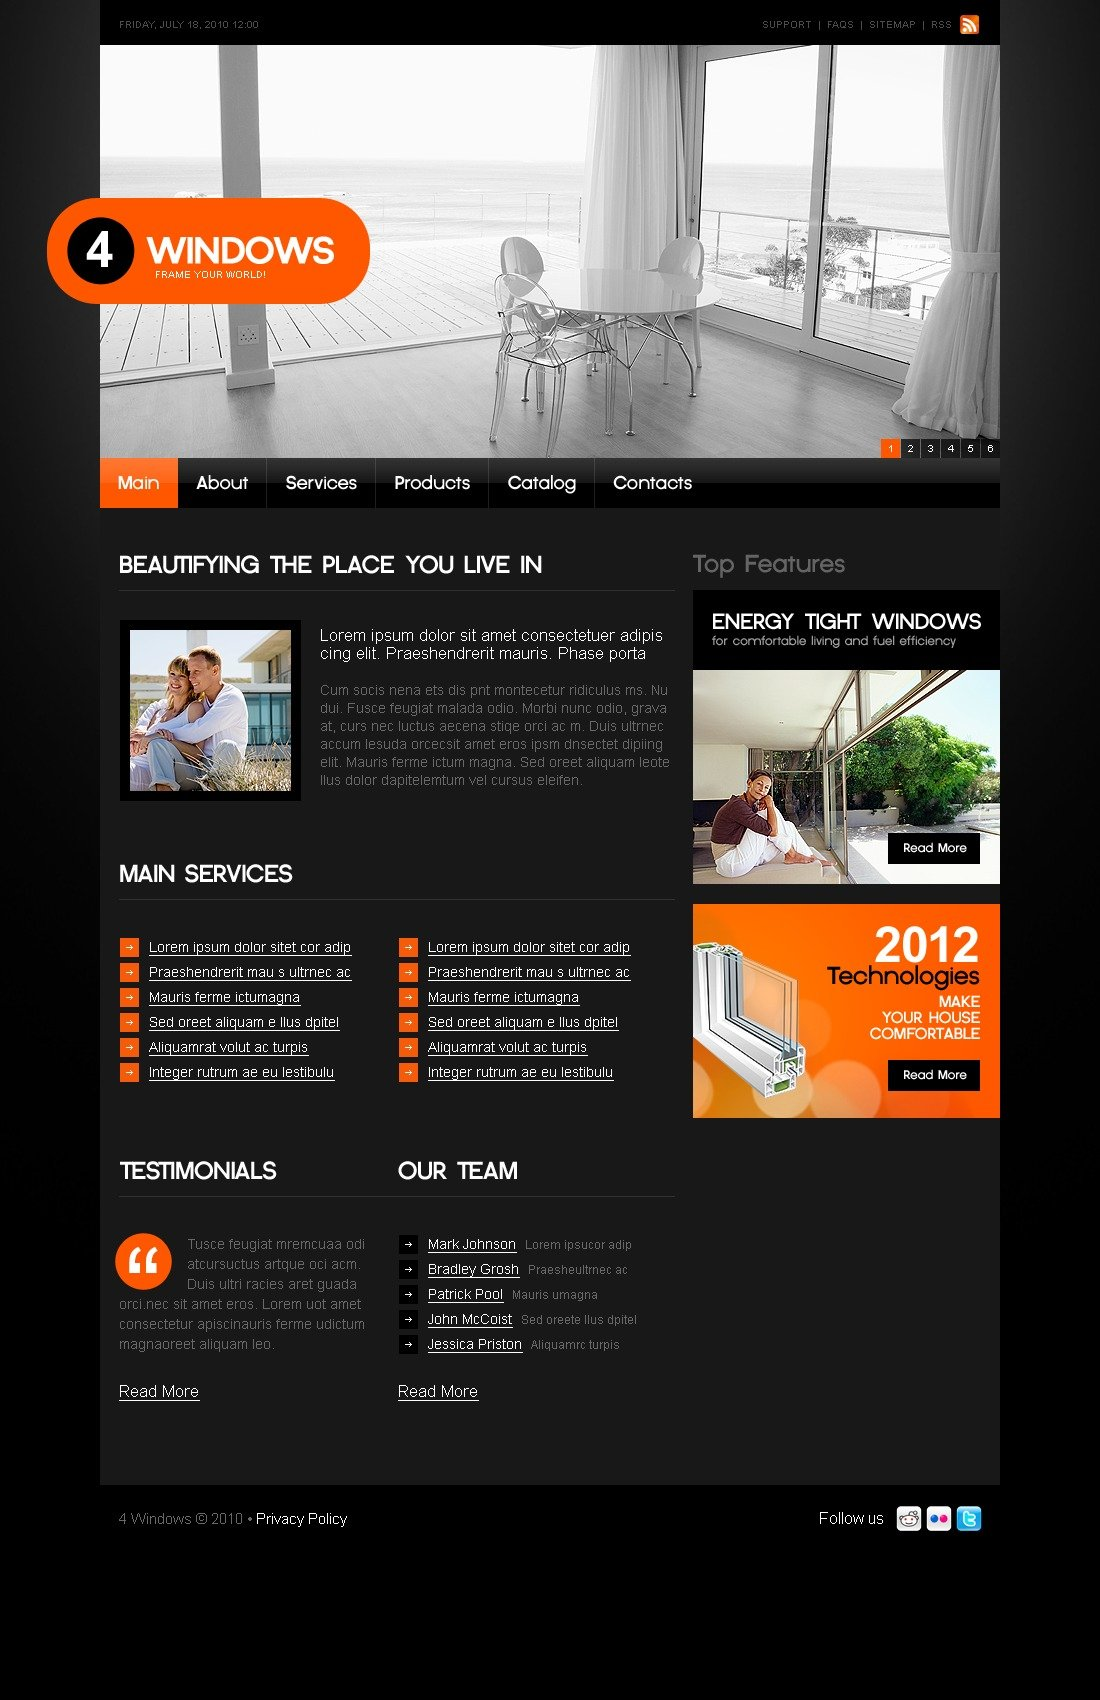 The Window Windows PSD Design 54077, one of the best PSD templates of its kind (interior & furniture, flash 8, wide), also known as window windows PSD template, construction PSD template, manufacturing PSD template, glass PSD template, frame PSD template, replacement PSD template, air PSD template, home PSD template, wood PSD template, wooden PSD template, plastic modern comfort PSD template, service company PSD template, door and related with window windows, construction, manufacturing, glass, frame, replacement, air, home, wood, wooden, plastic modern comfort, service company, door, etc.